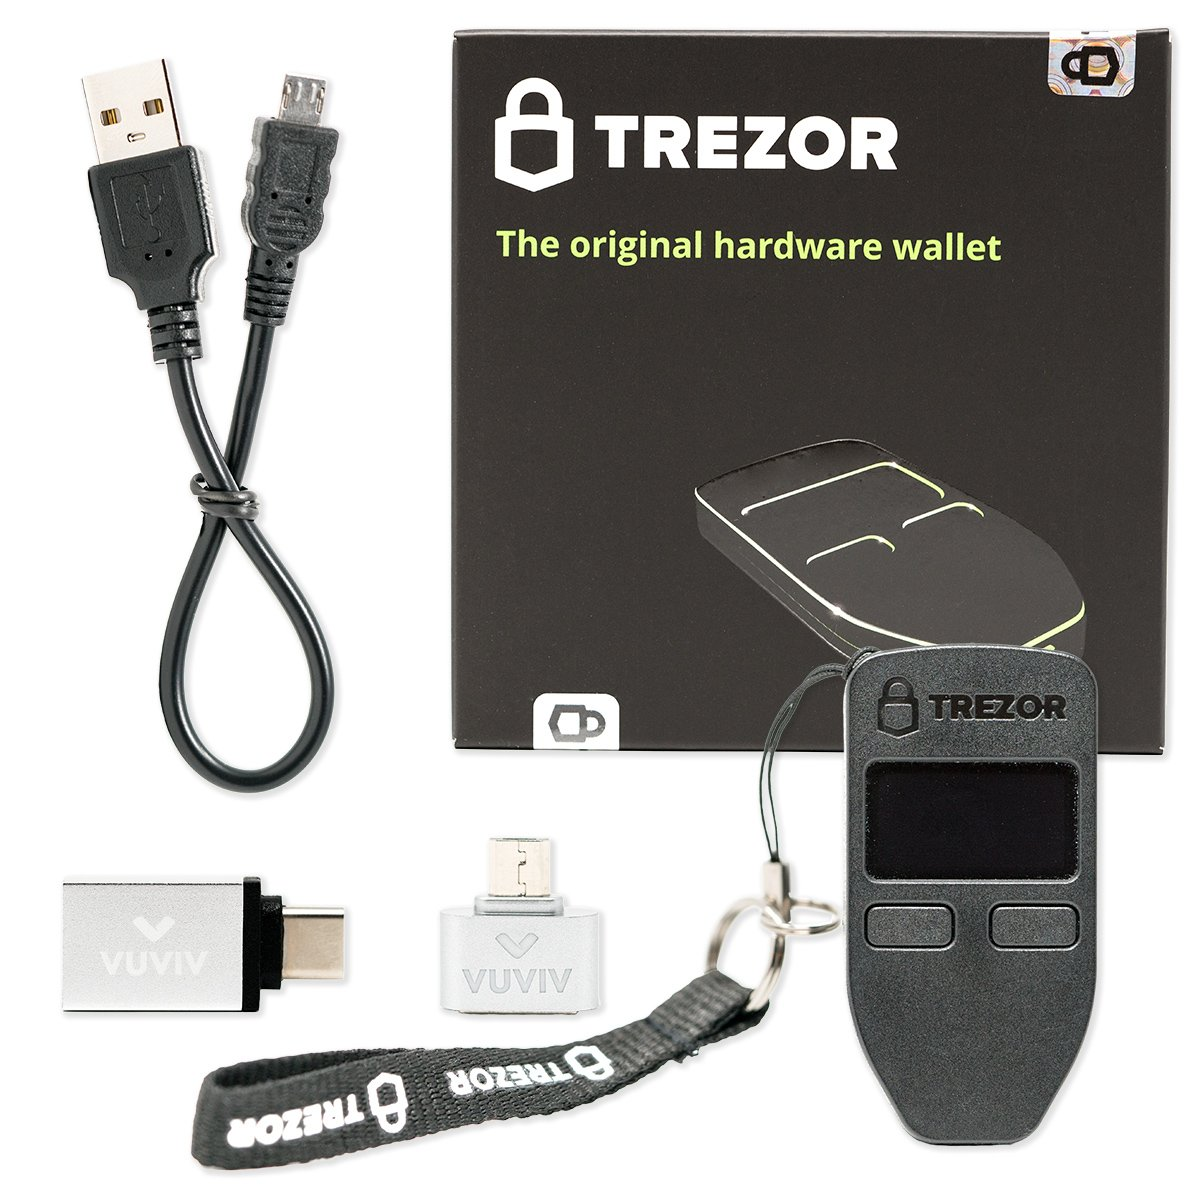 Trezor (Black) Bitcoin Wallet Bundle With VUVIV Micro-USB Adapter and USB-C Adapter for MacBook (3 items) by VUVIV